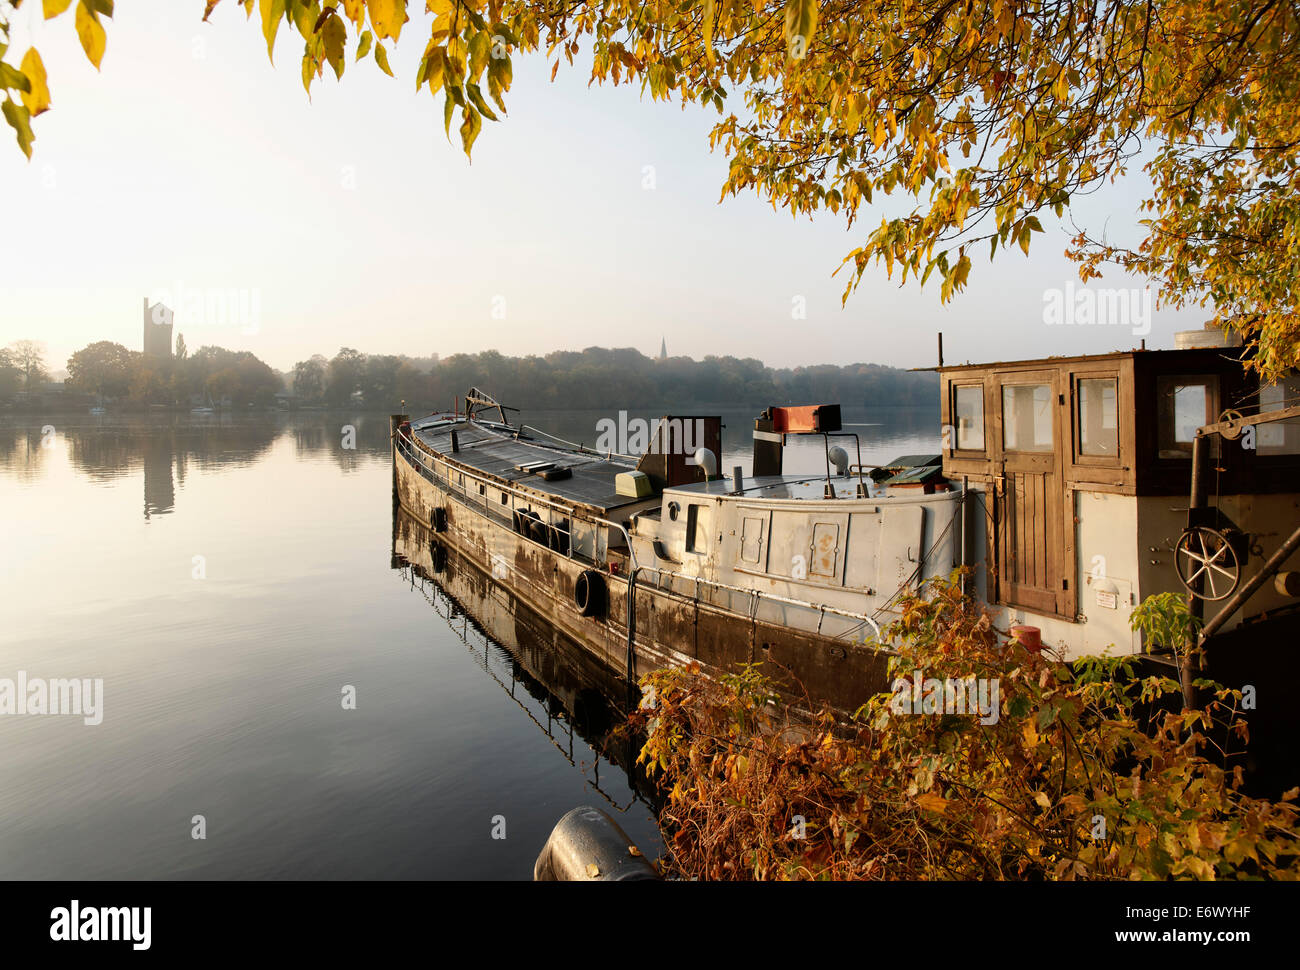 Old Cargo Ship, Templin Lake, Havel, Water Tower on Hermannswerder island, Potsdam, Land Brandenburg, Germany - Stock Image